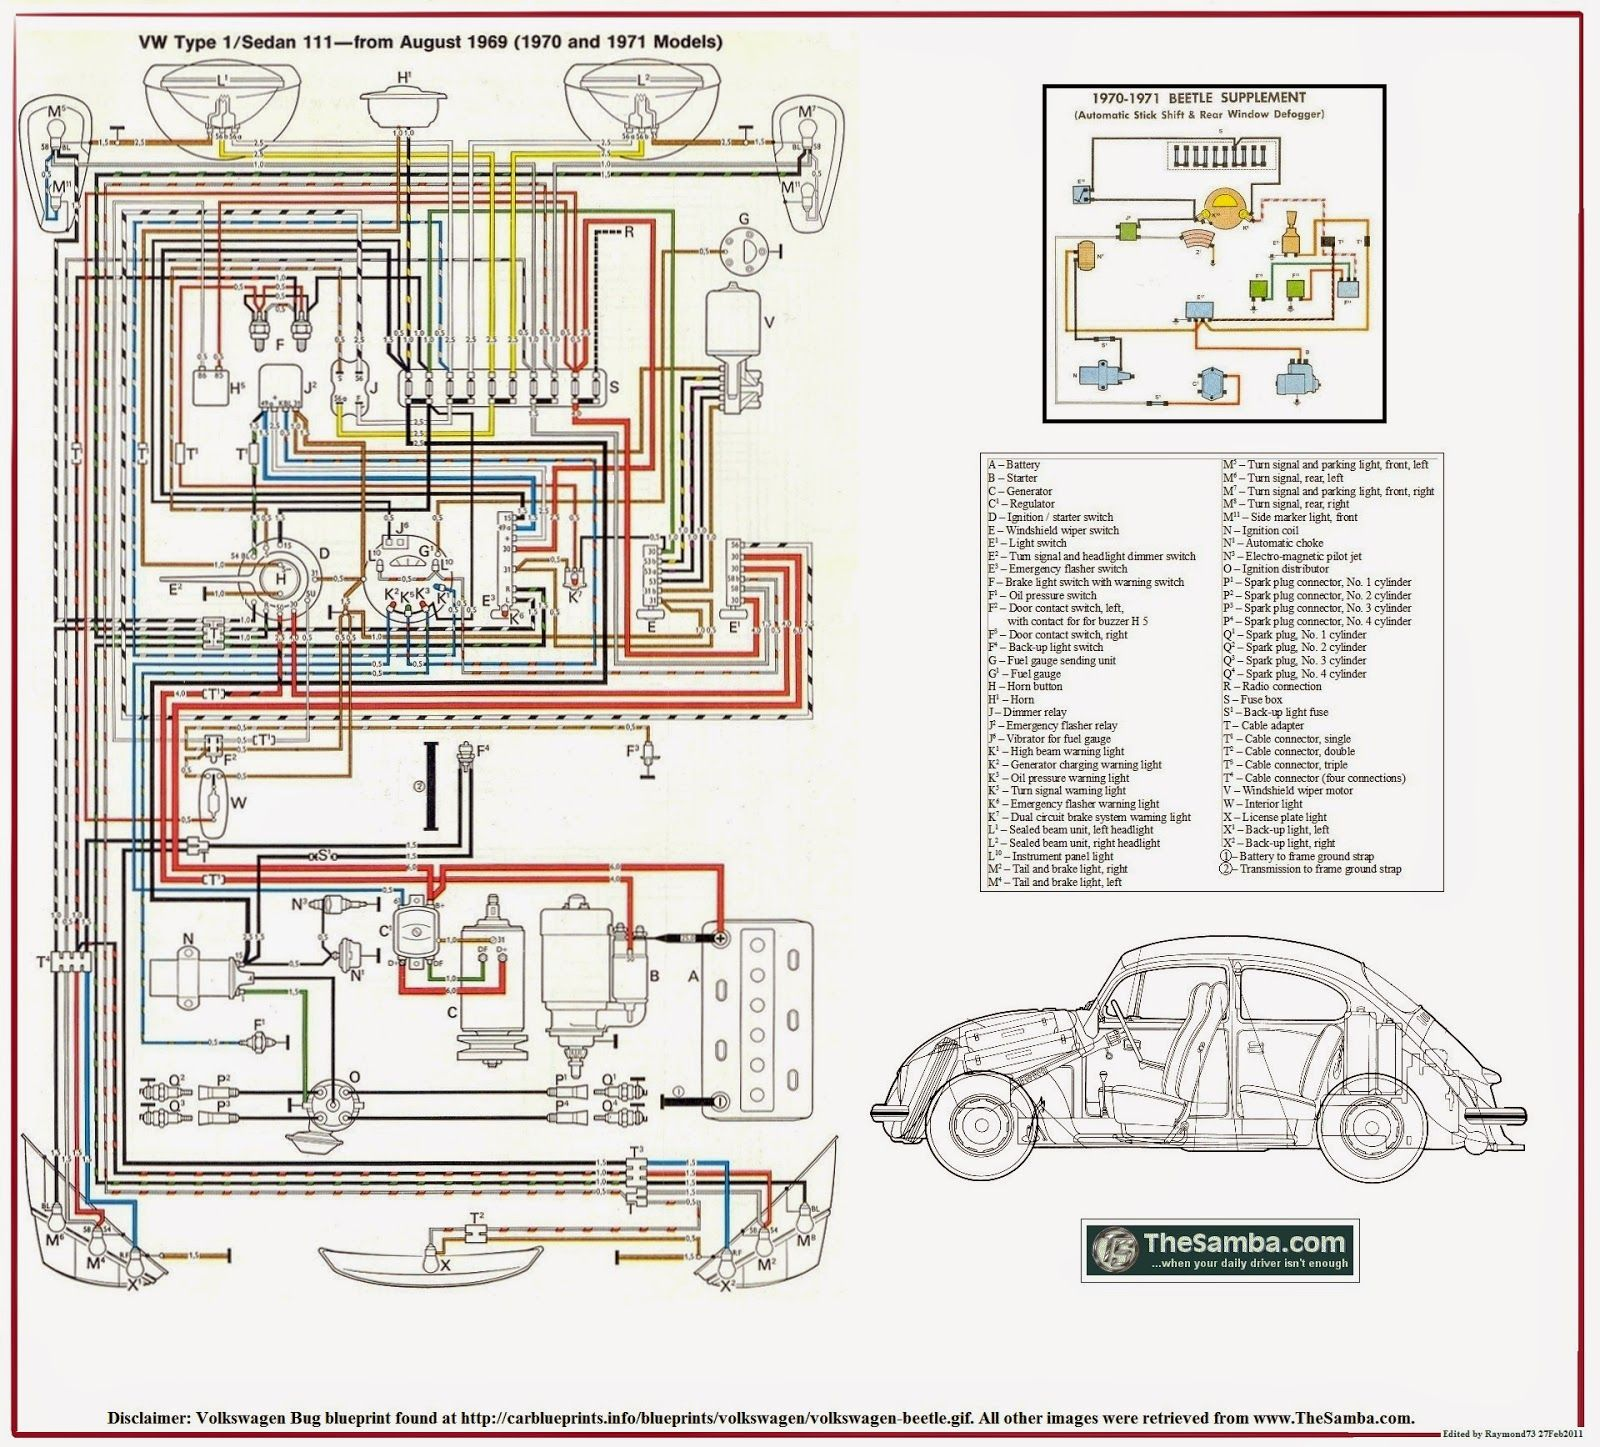 c42f7e50c6cd2df691326f8c1e5c6e97 urbi et orbi my bucket list journals volkswagen (vw) beetle vw type 3 wiring harness at virtualis.co